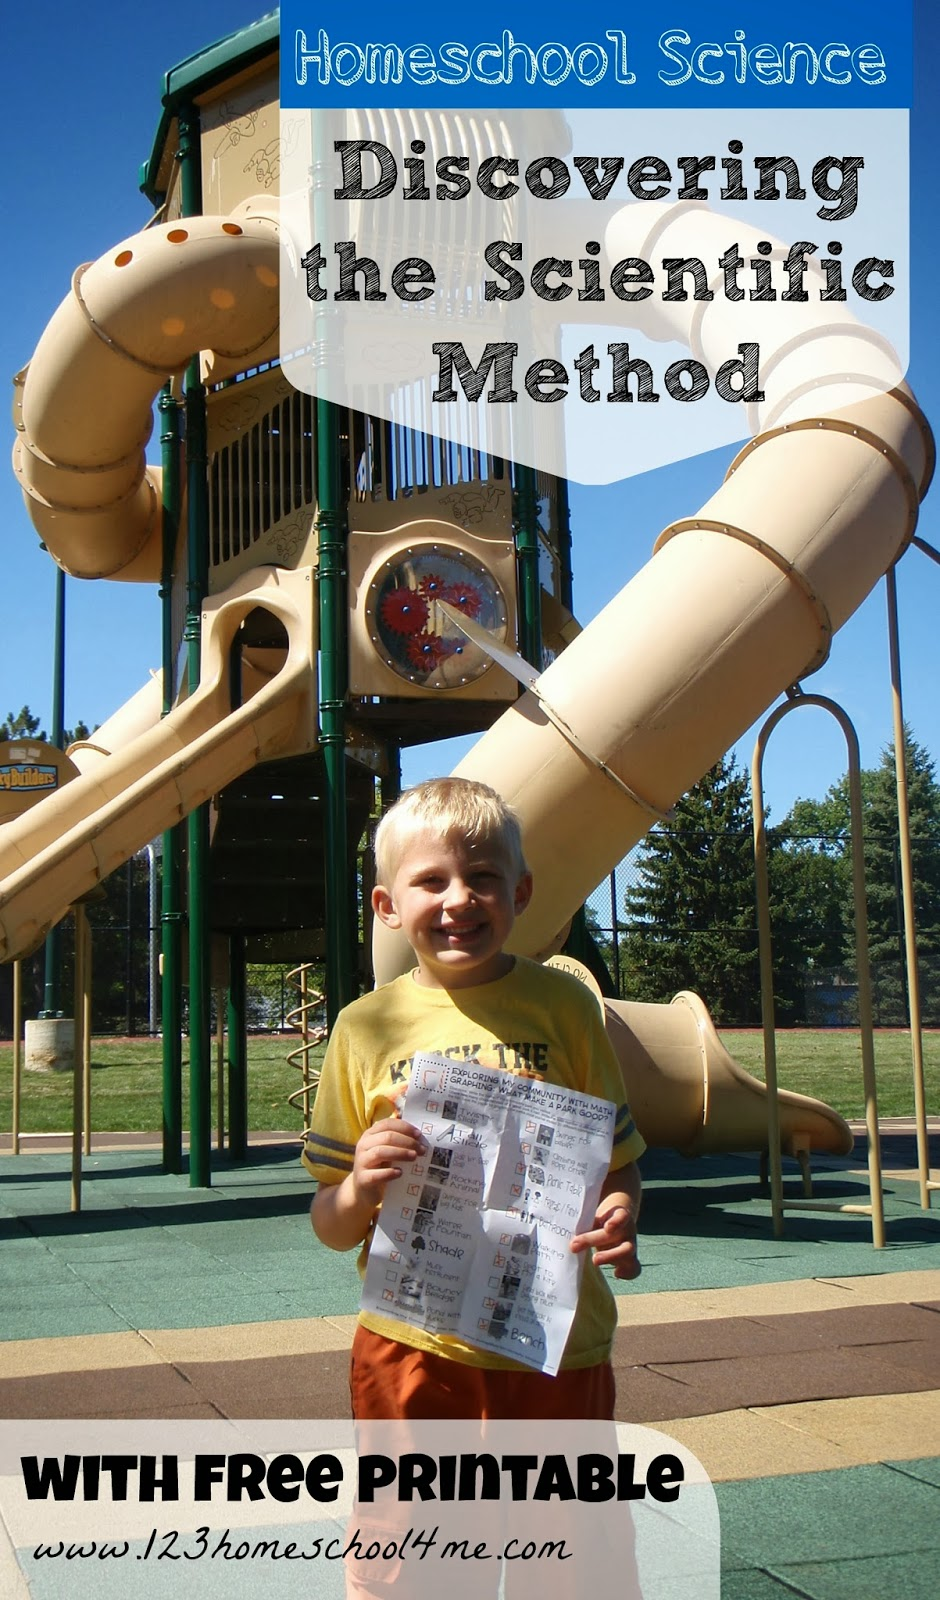 Discovering the Scientific Method in the Park (with free printable) #homeschool #education #preschool #scienceisfun